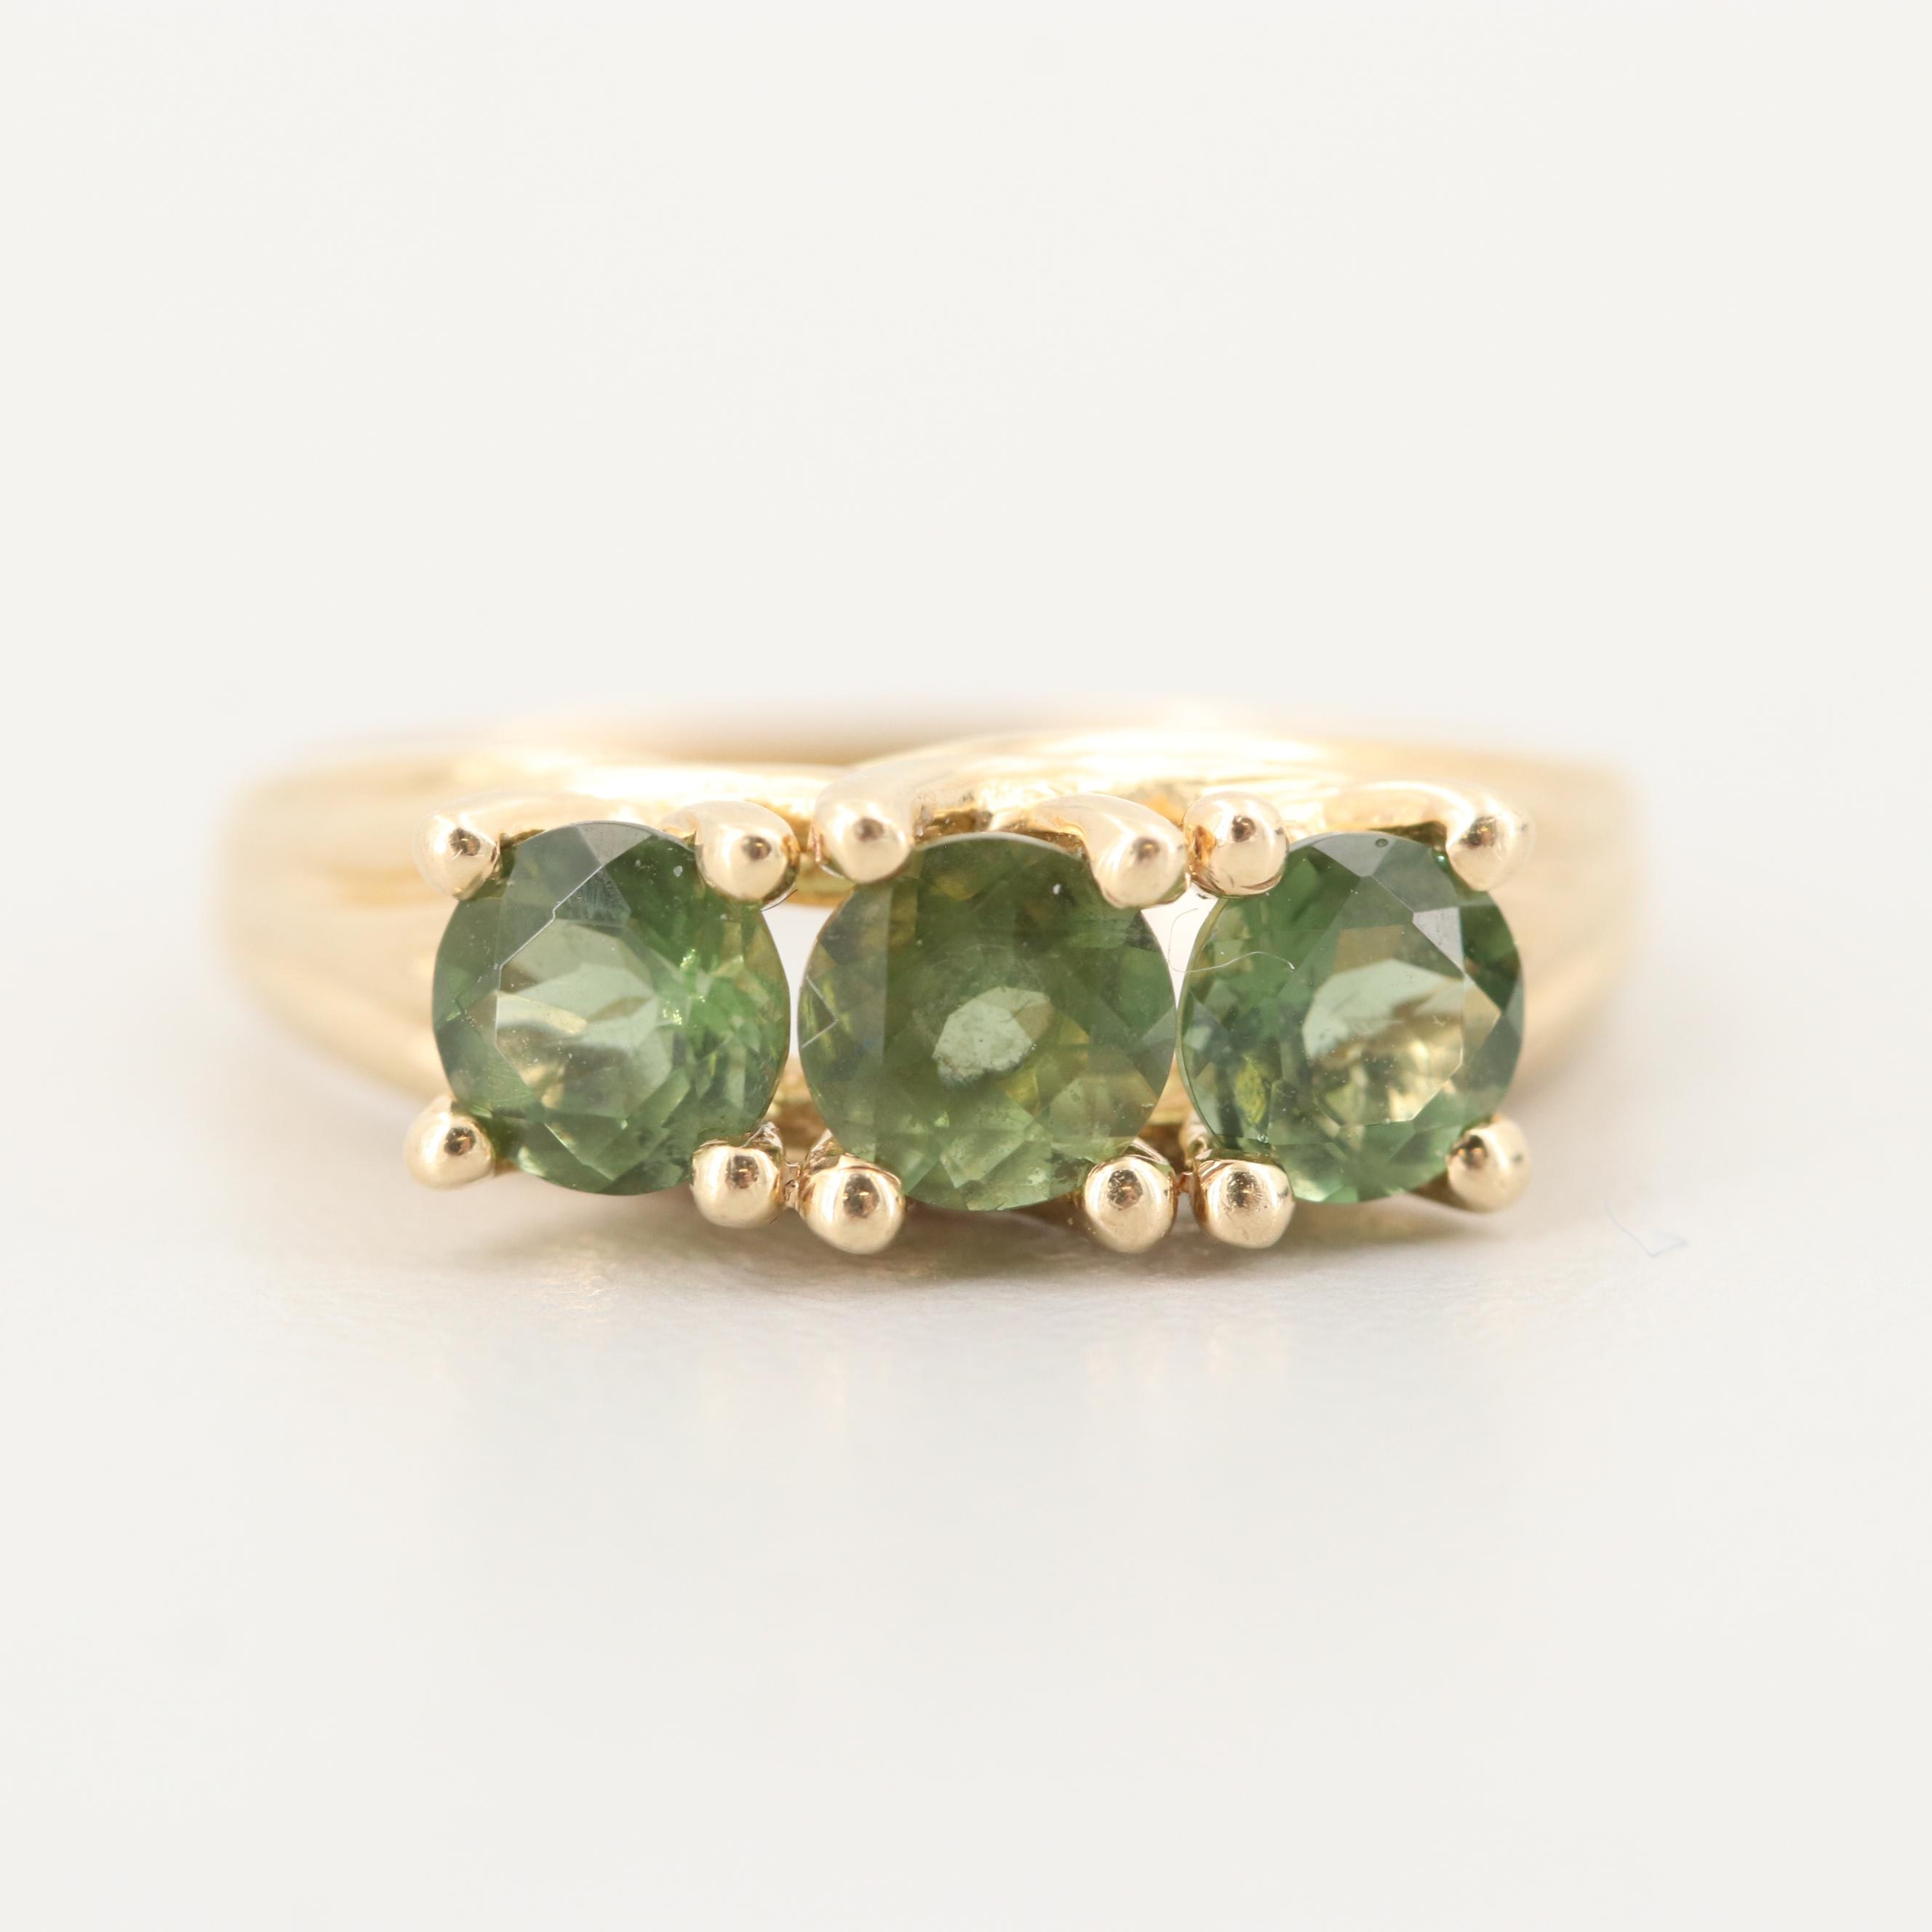 10K Yellow Gold Ring with Green Faceted Glass Stones